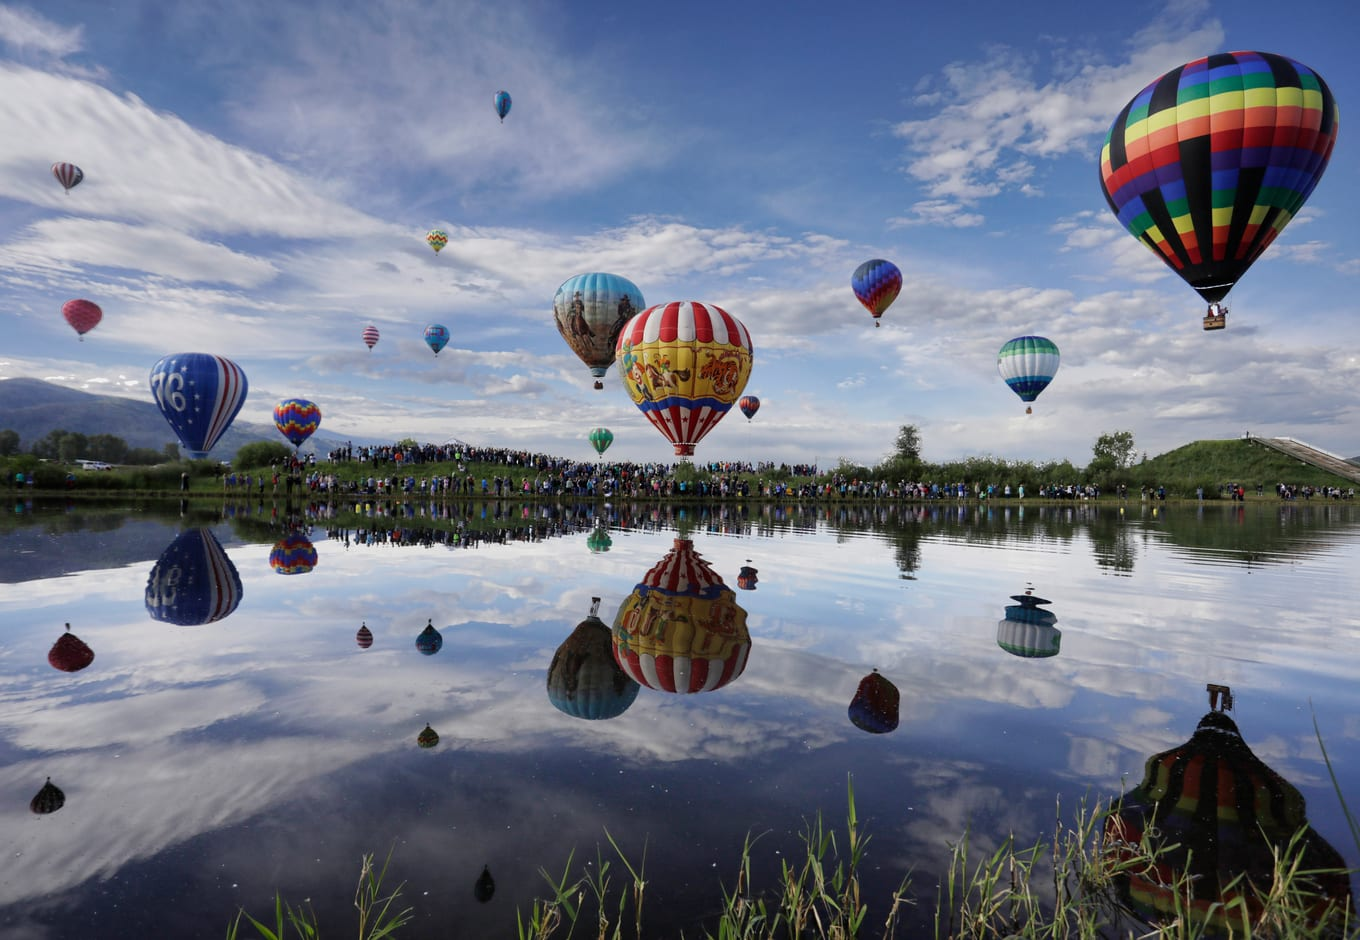 Balloons floatinh over Bald Eagle Lake, in Steamboat Springs Colorado.